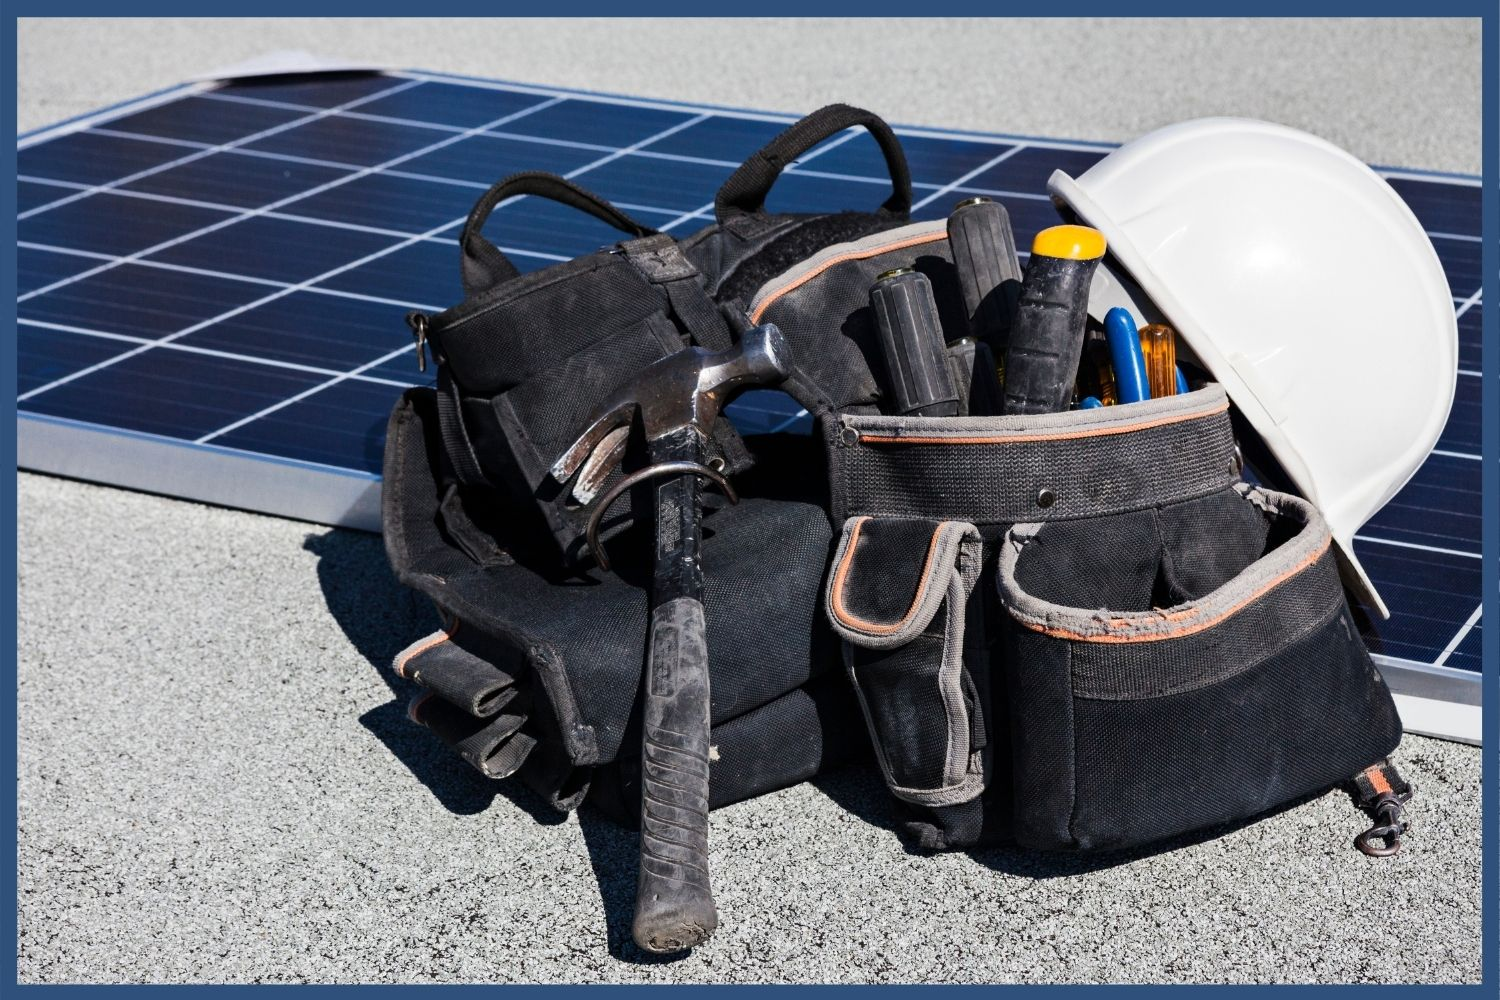 Solar panel with tools to install clean energy equipment